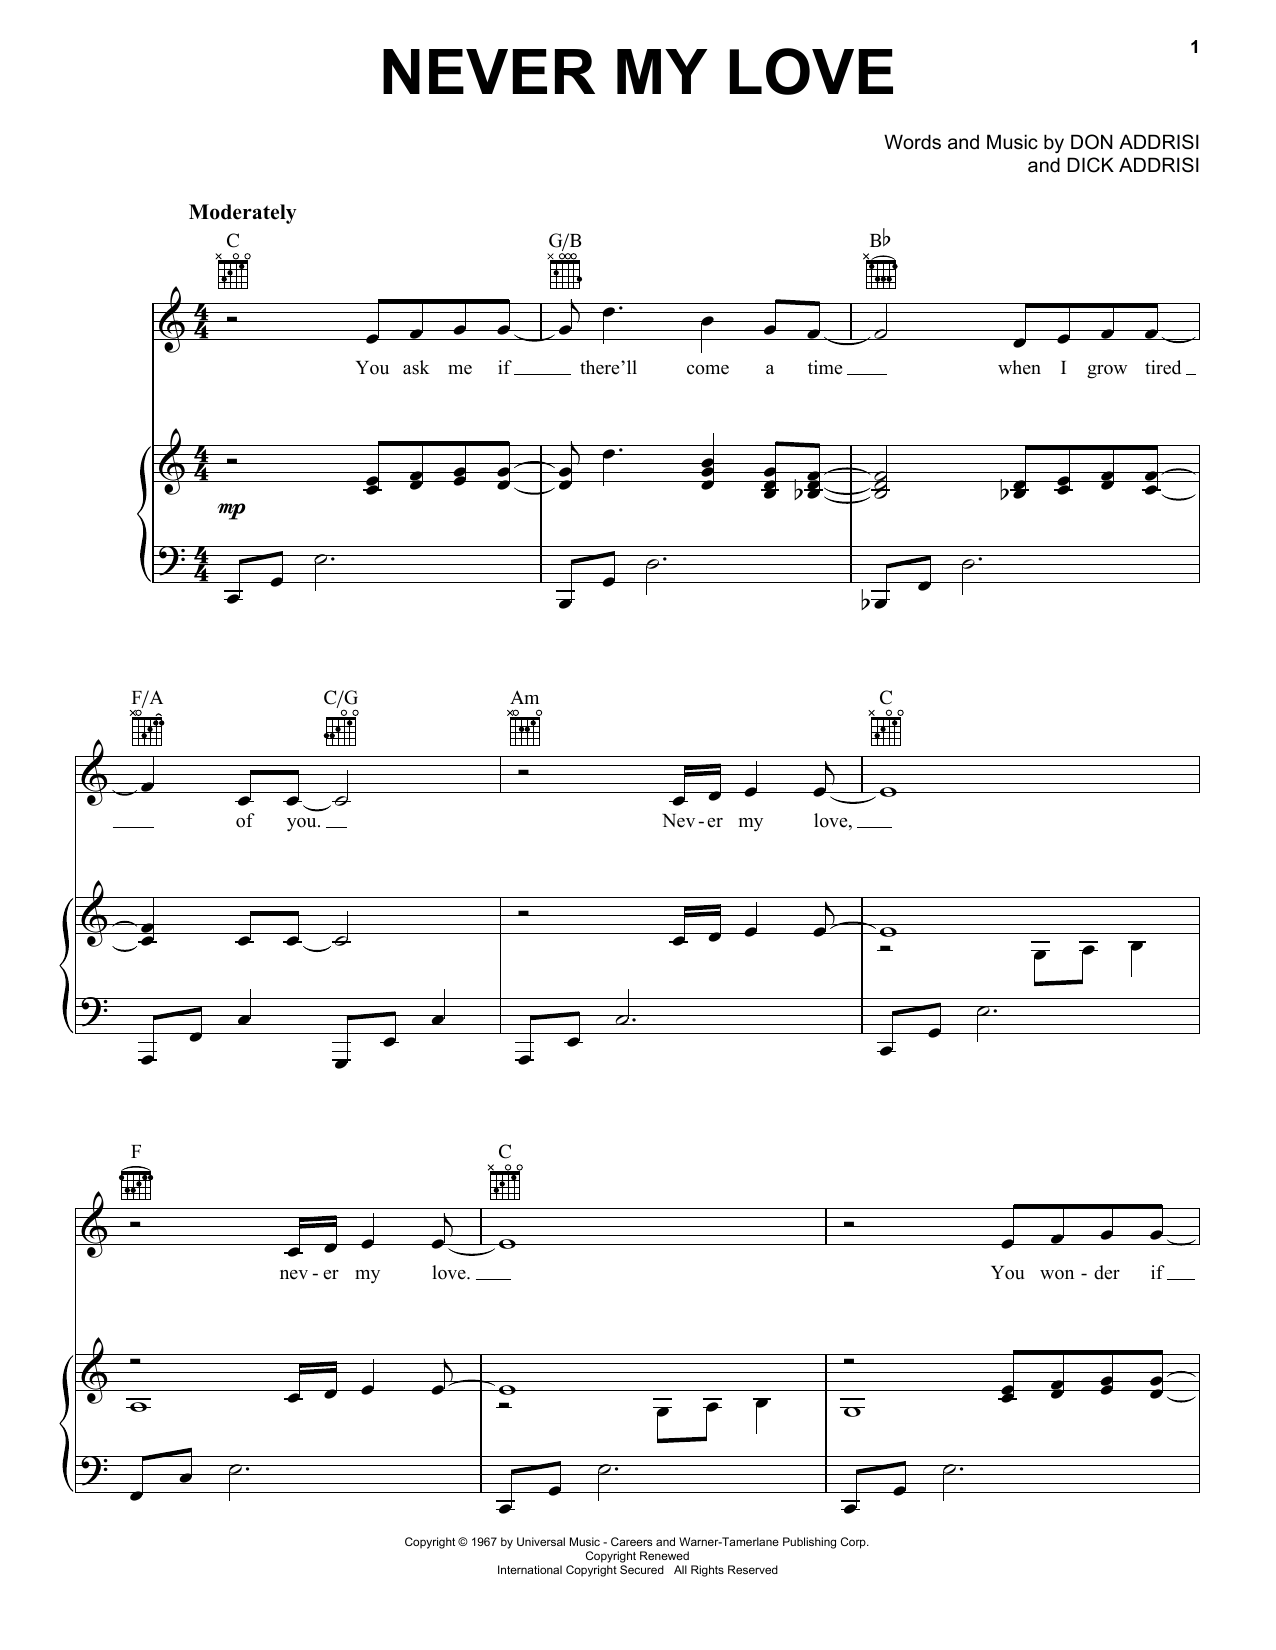 Never My Love sheet music for voice, piano or guitar by Don Addrisi